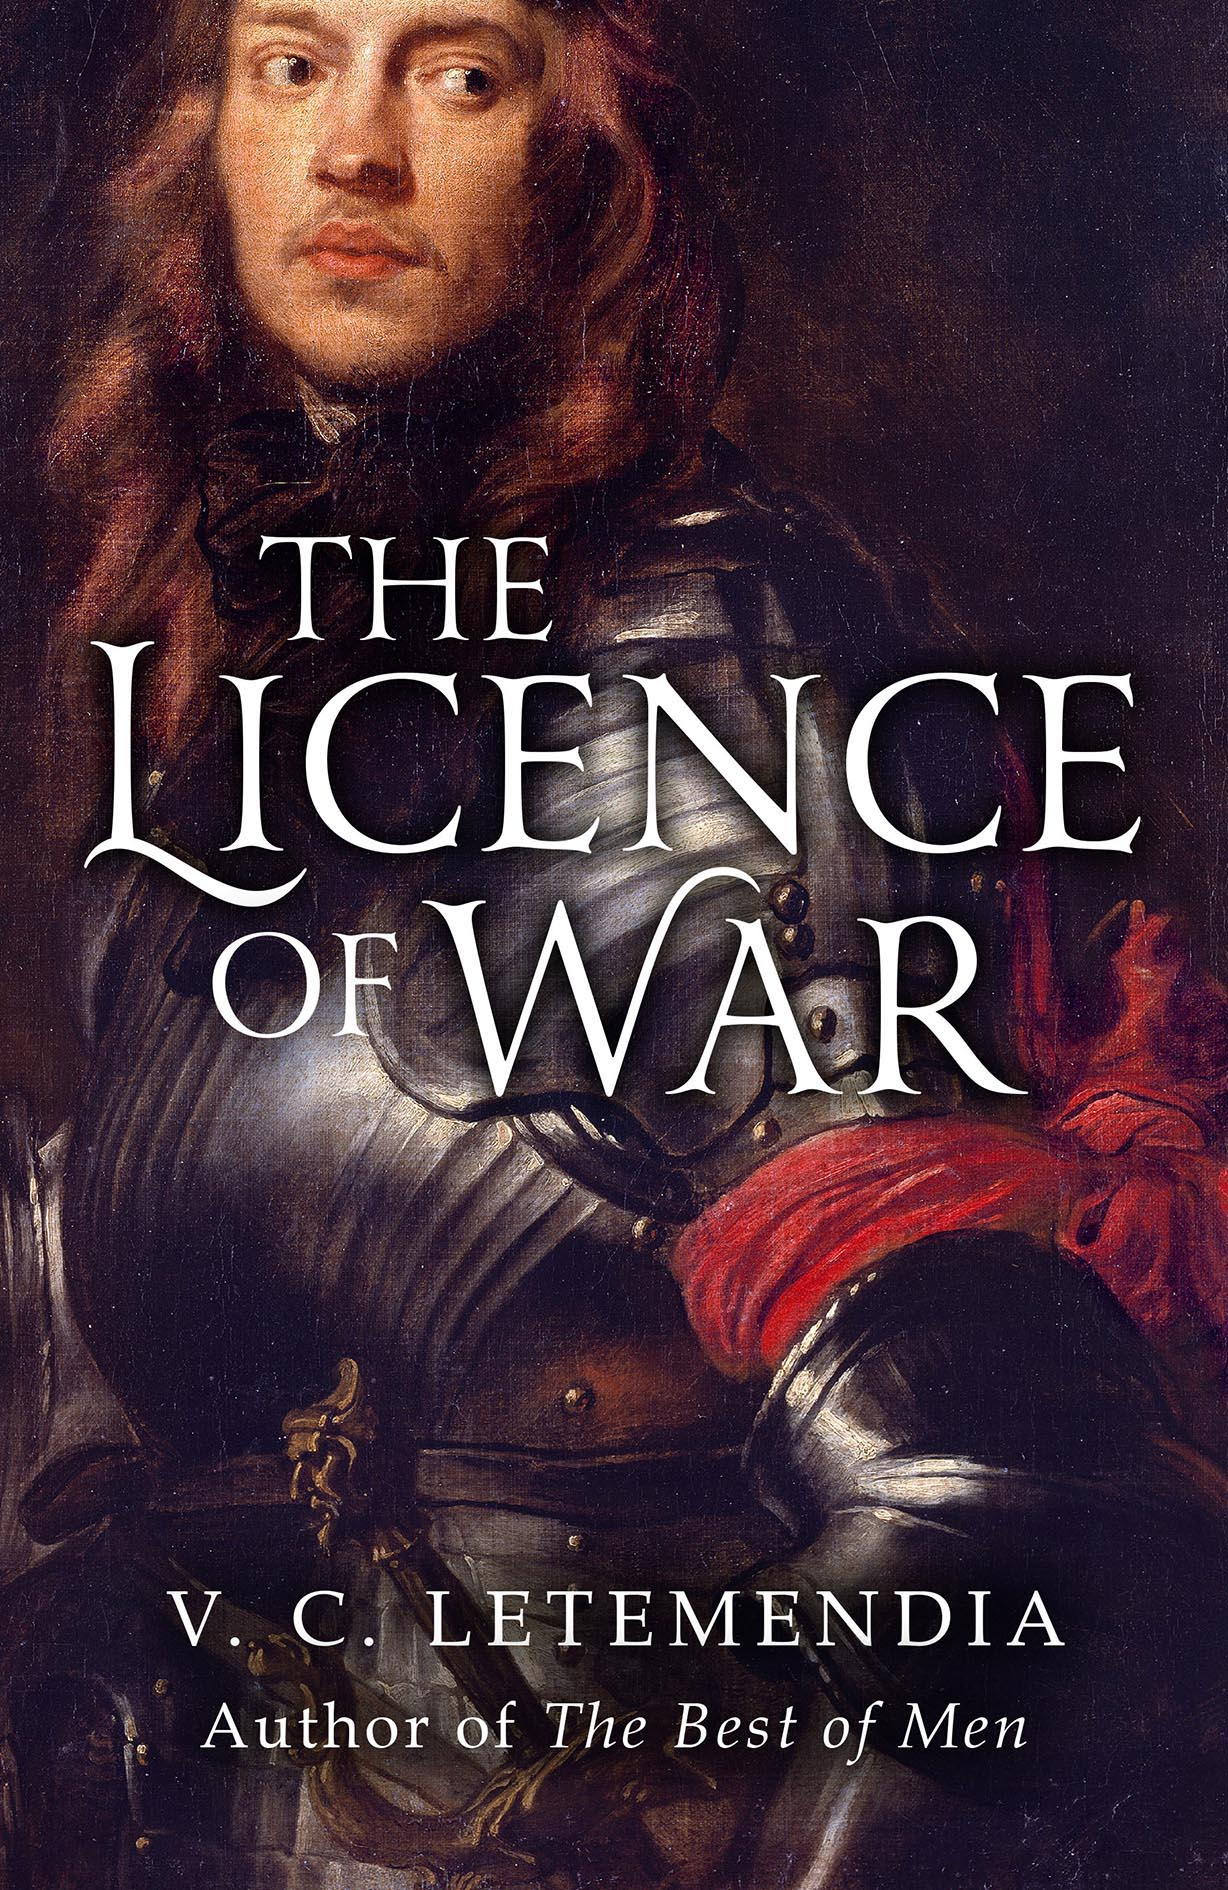 The Licence of War UK hardcover